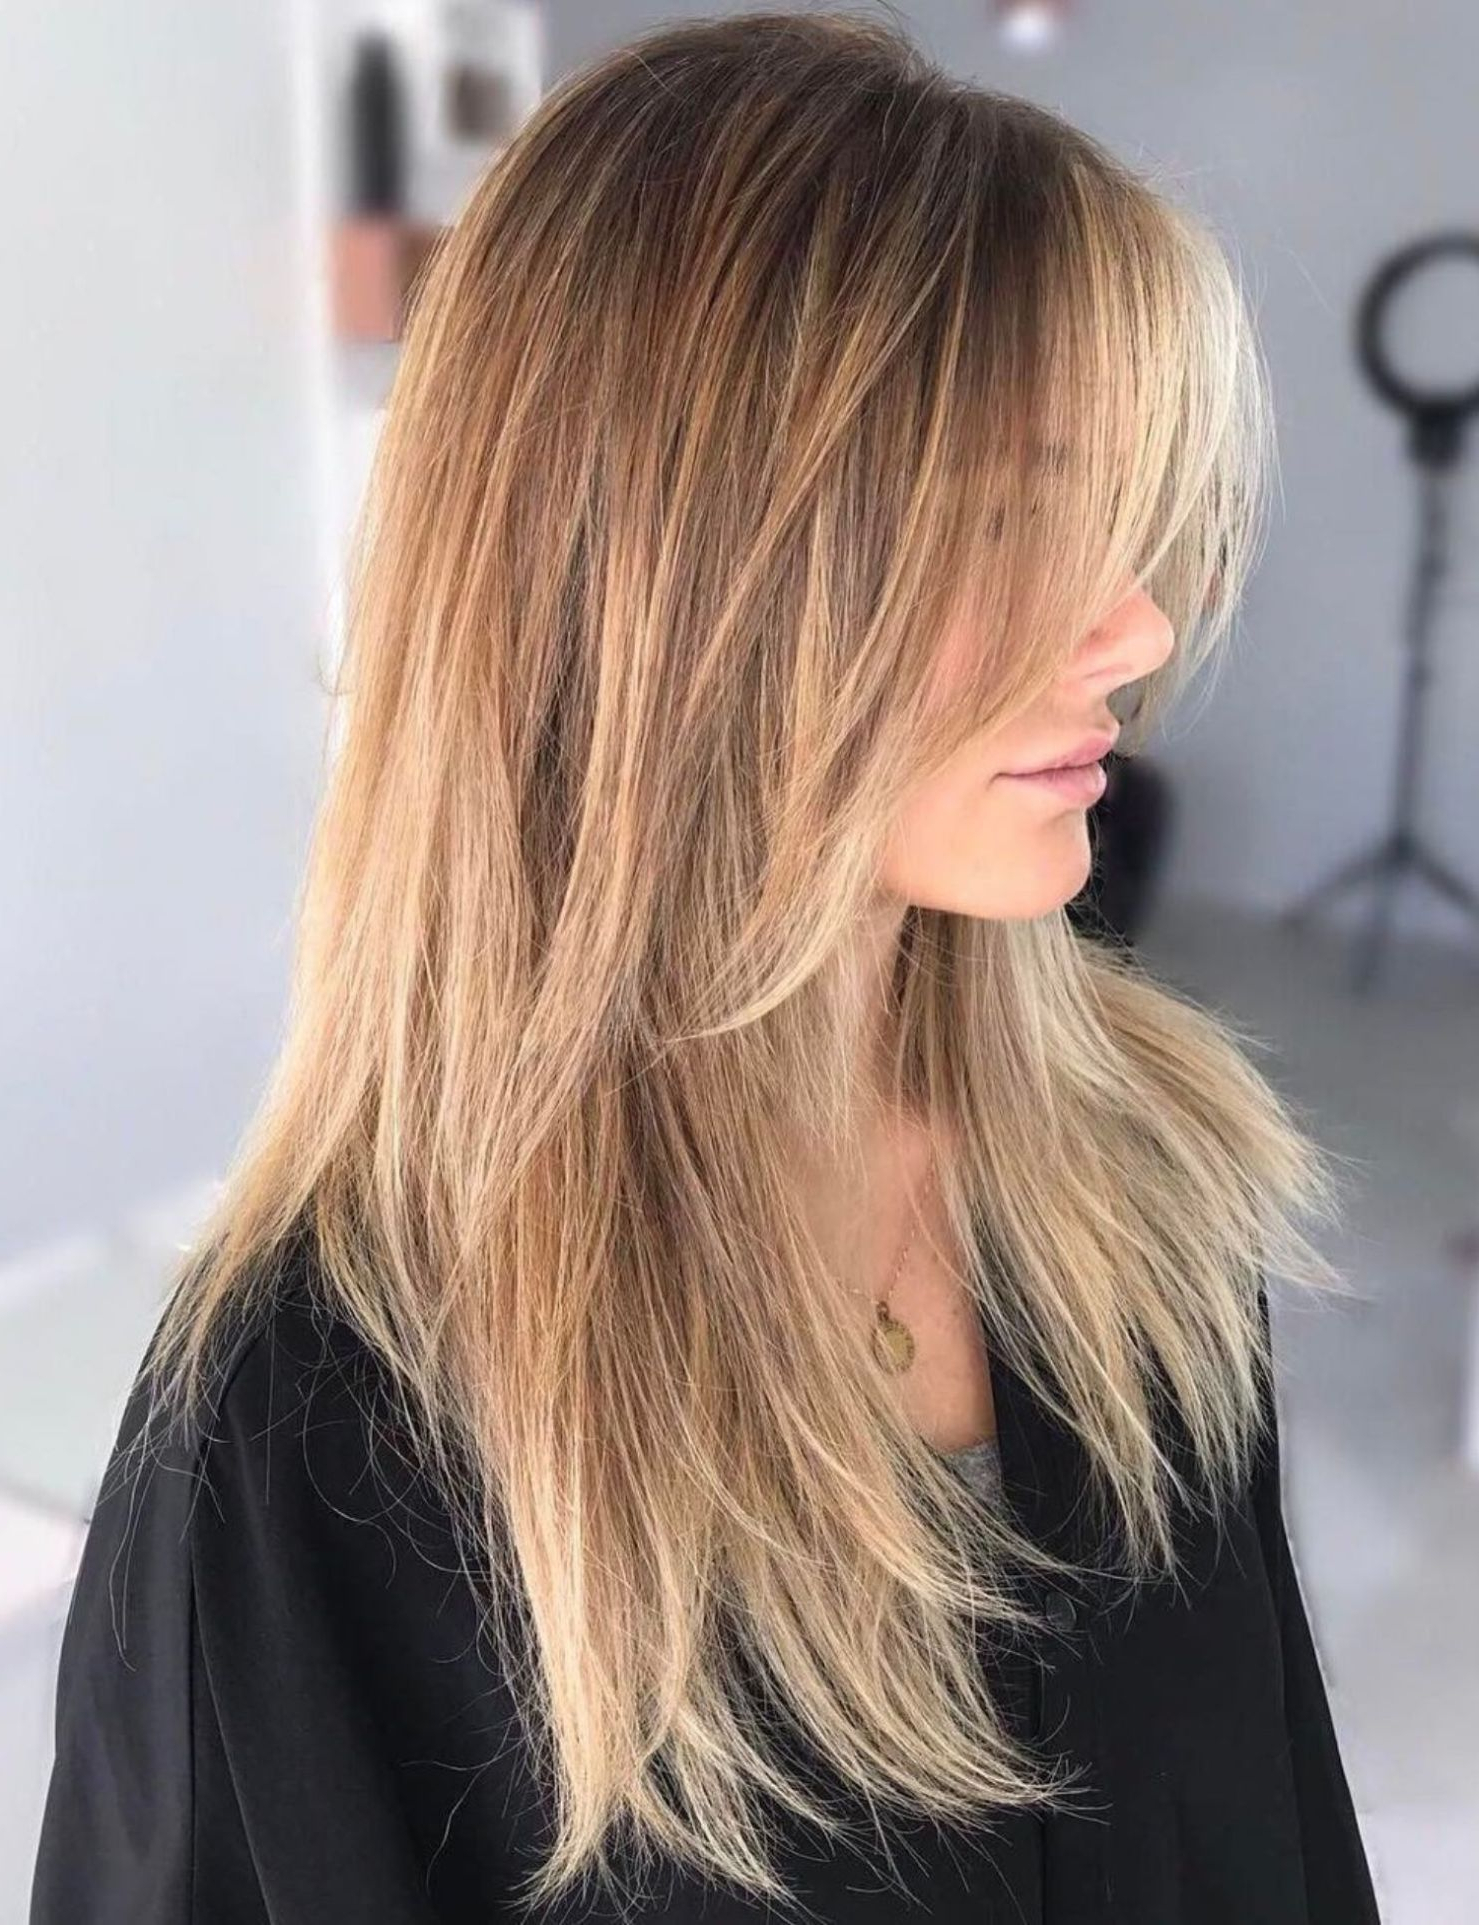 Pin On Hair & Makeup Pertaining To Famous Longer Tousled Caramel Blonde Shag Haircuts (View 14 of 20)